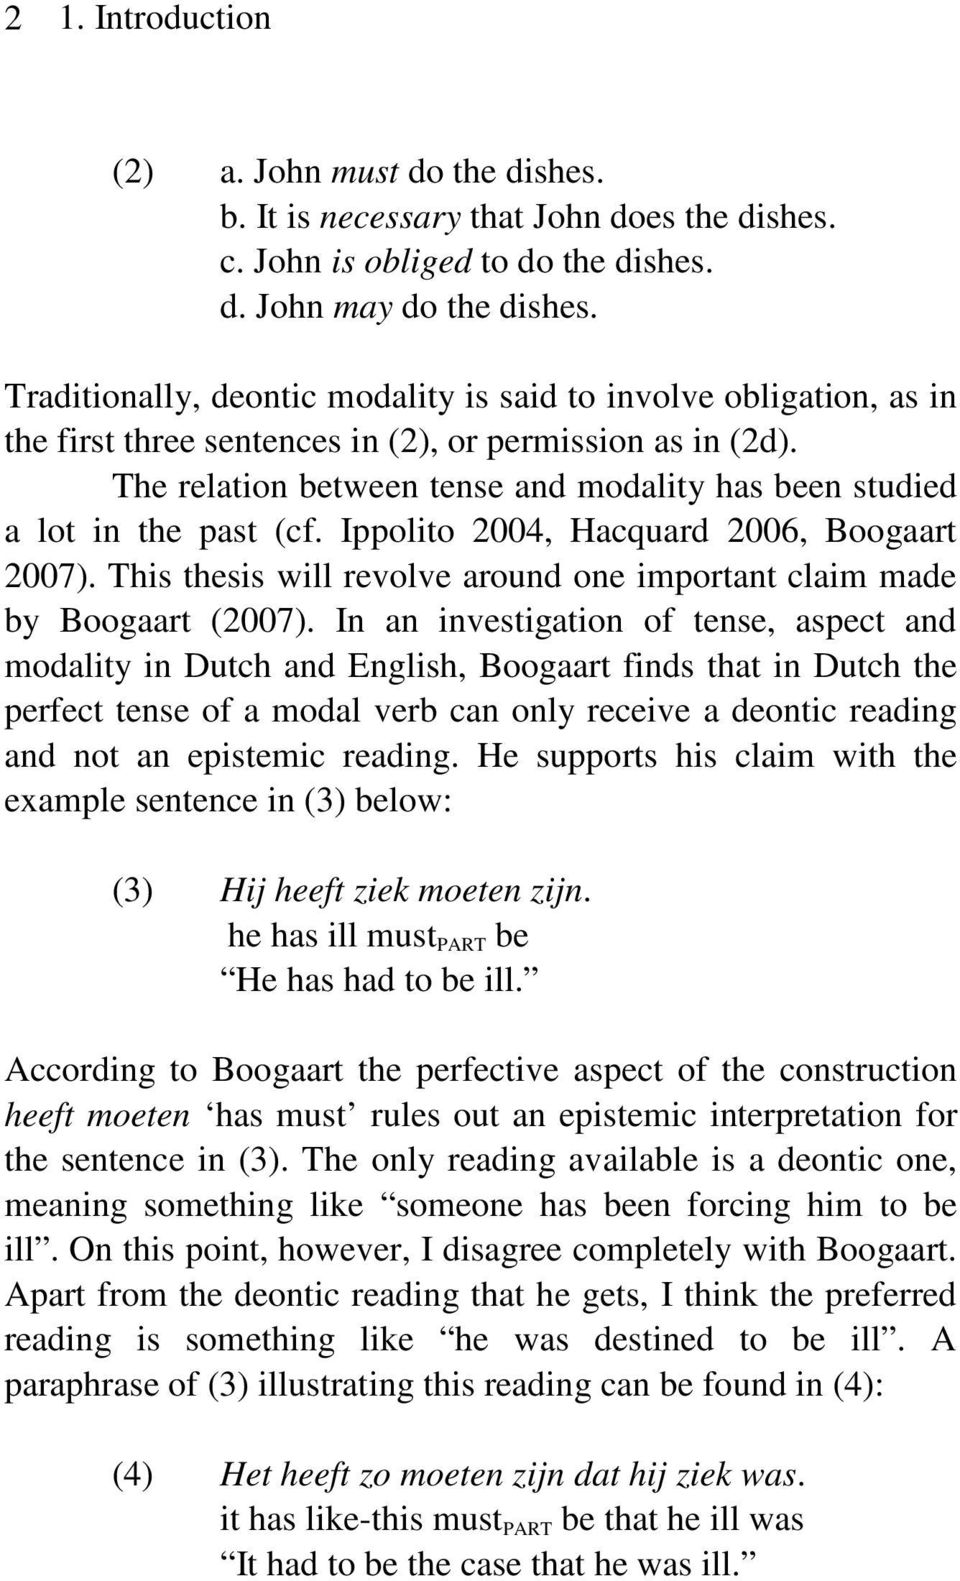 The relation between tense and modality has been studied a lot in the past (cf. Ippolito 2004, Hacquard 2006, Boogaart 2007).